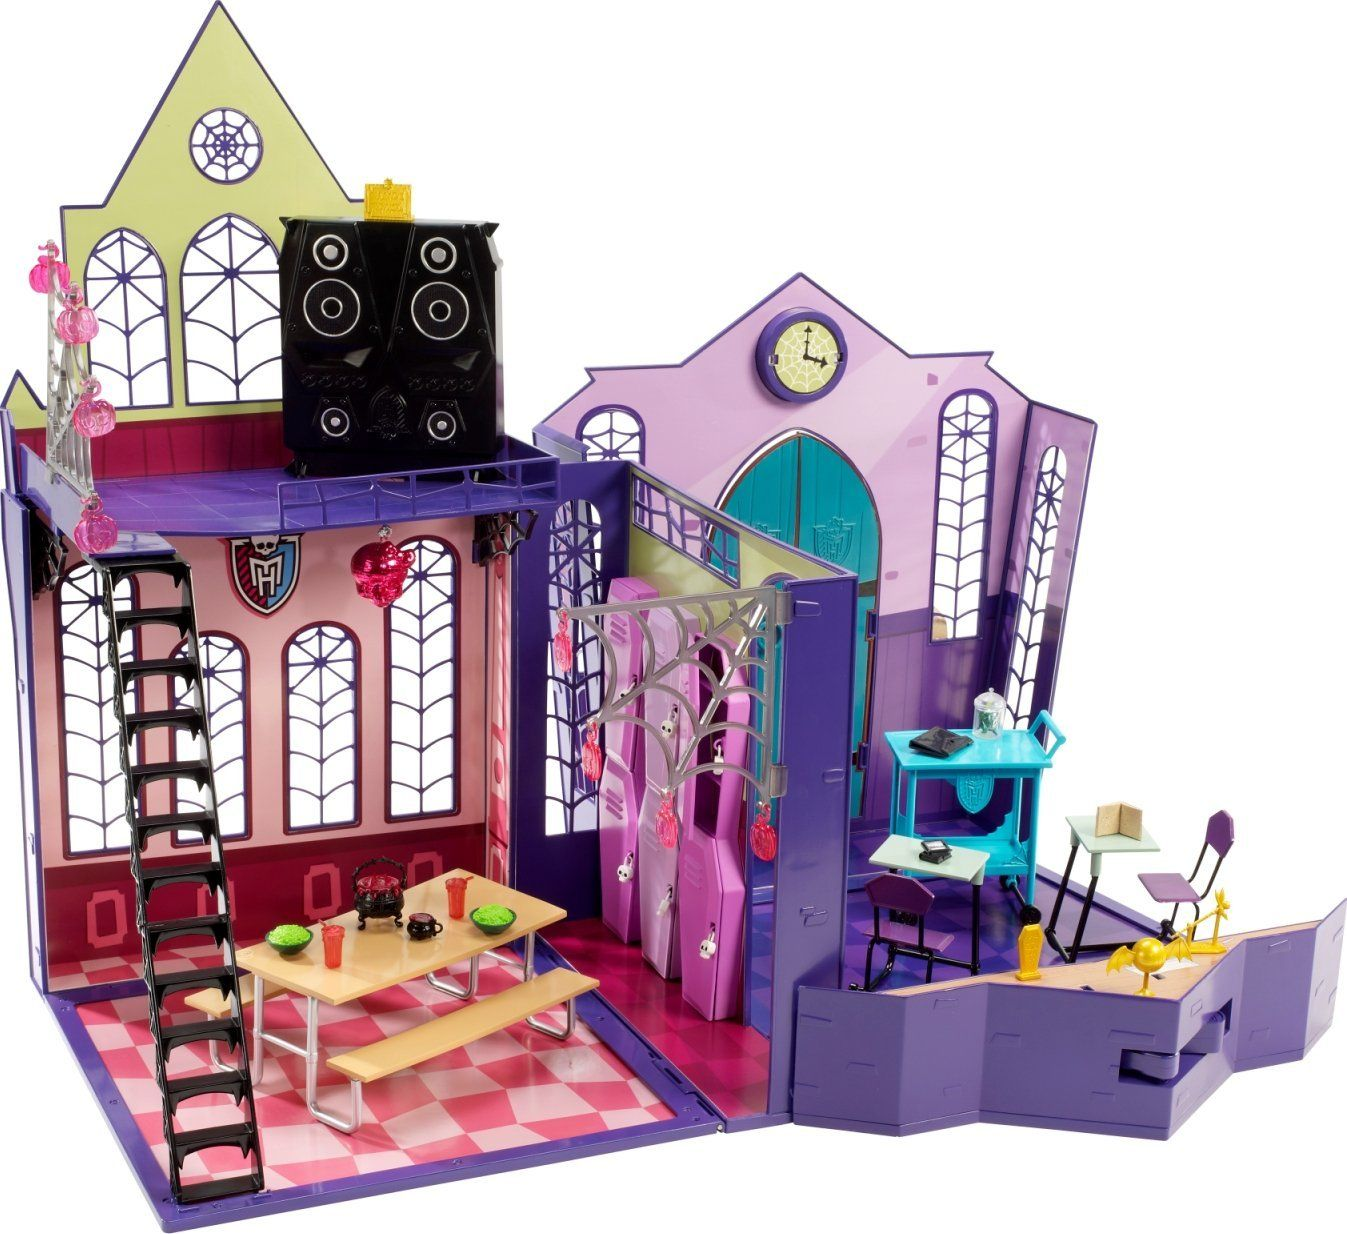 What are some popular Monster High games for girls?